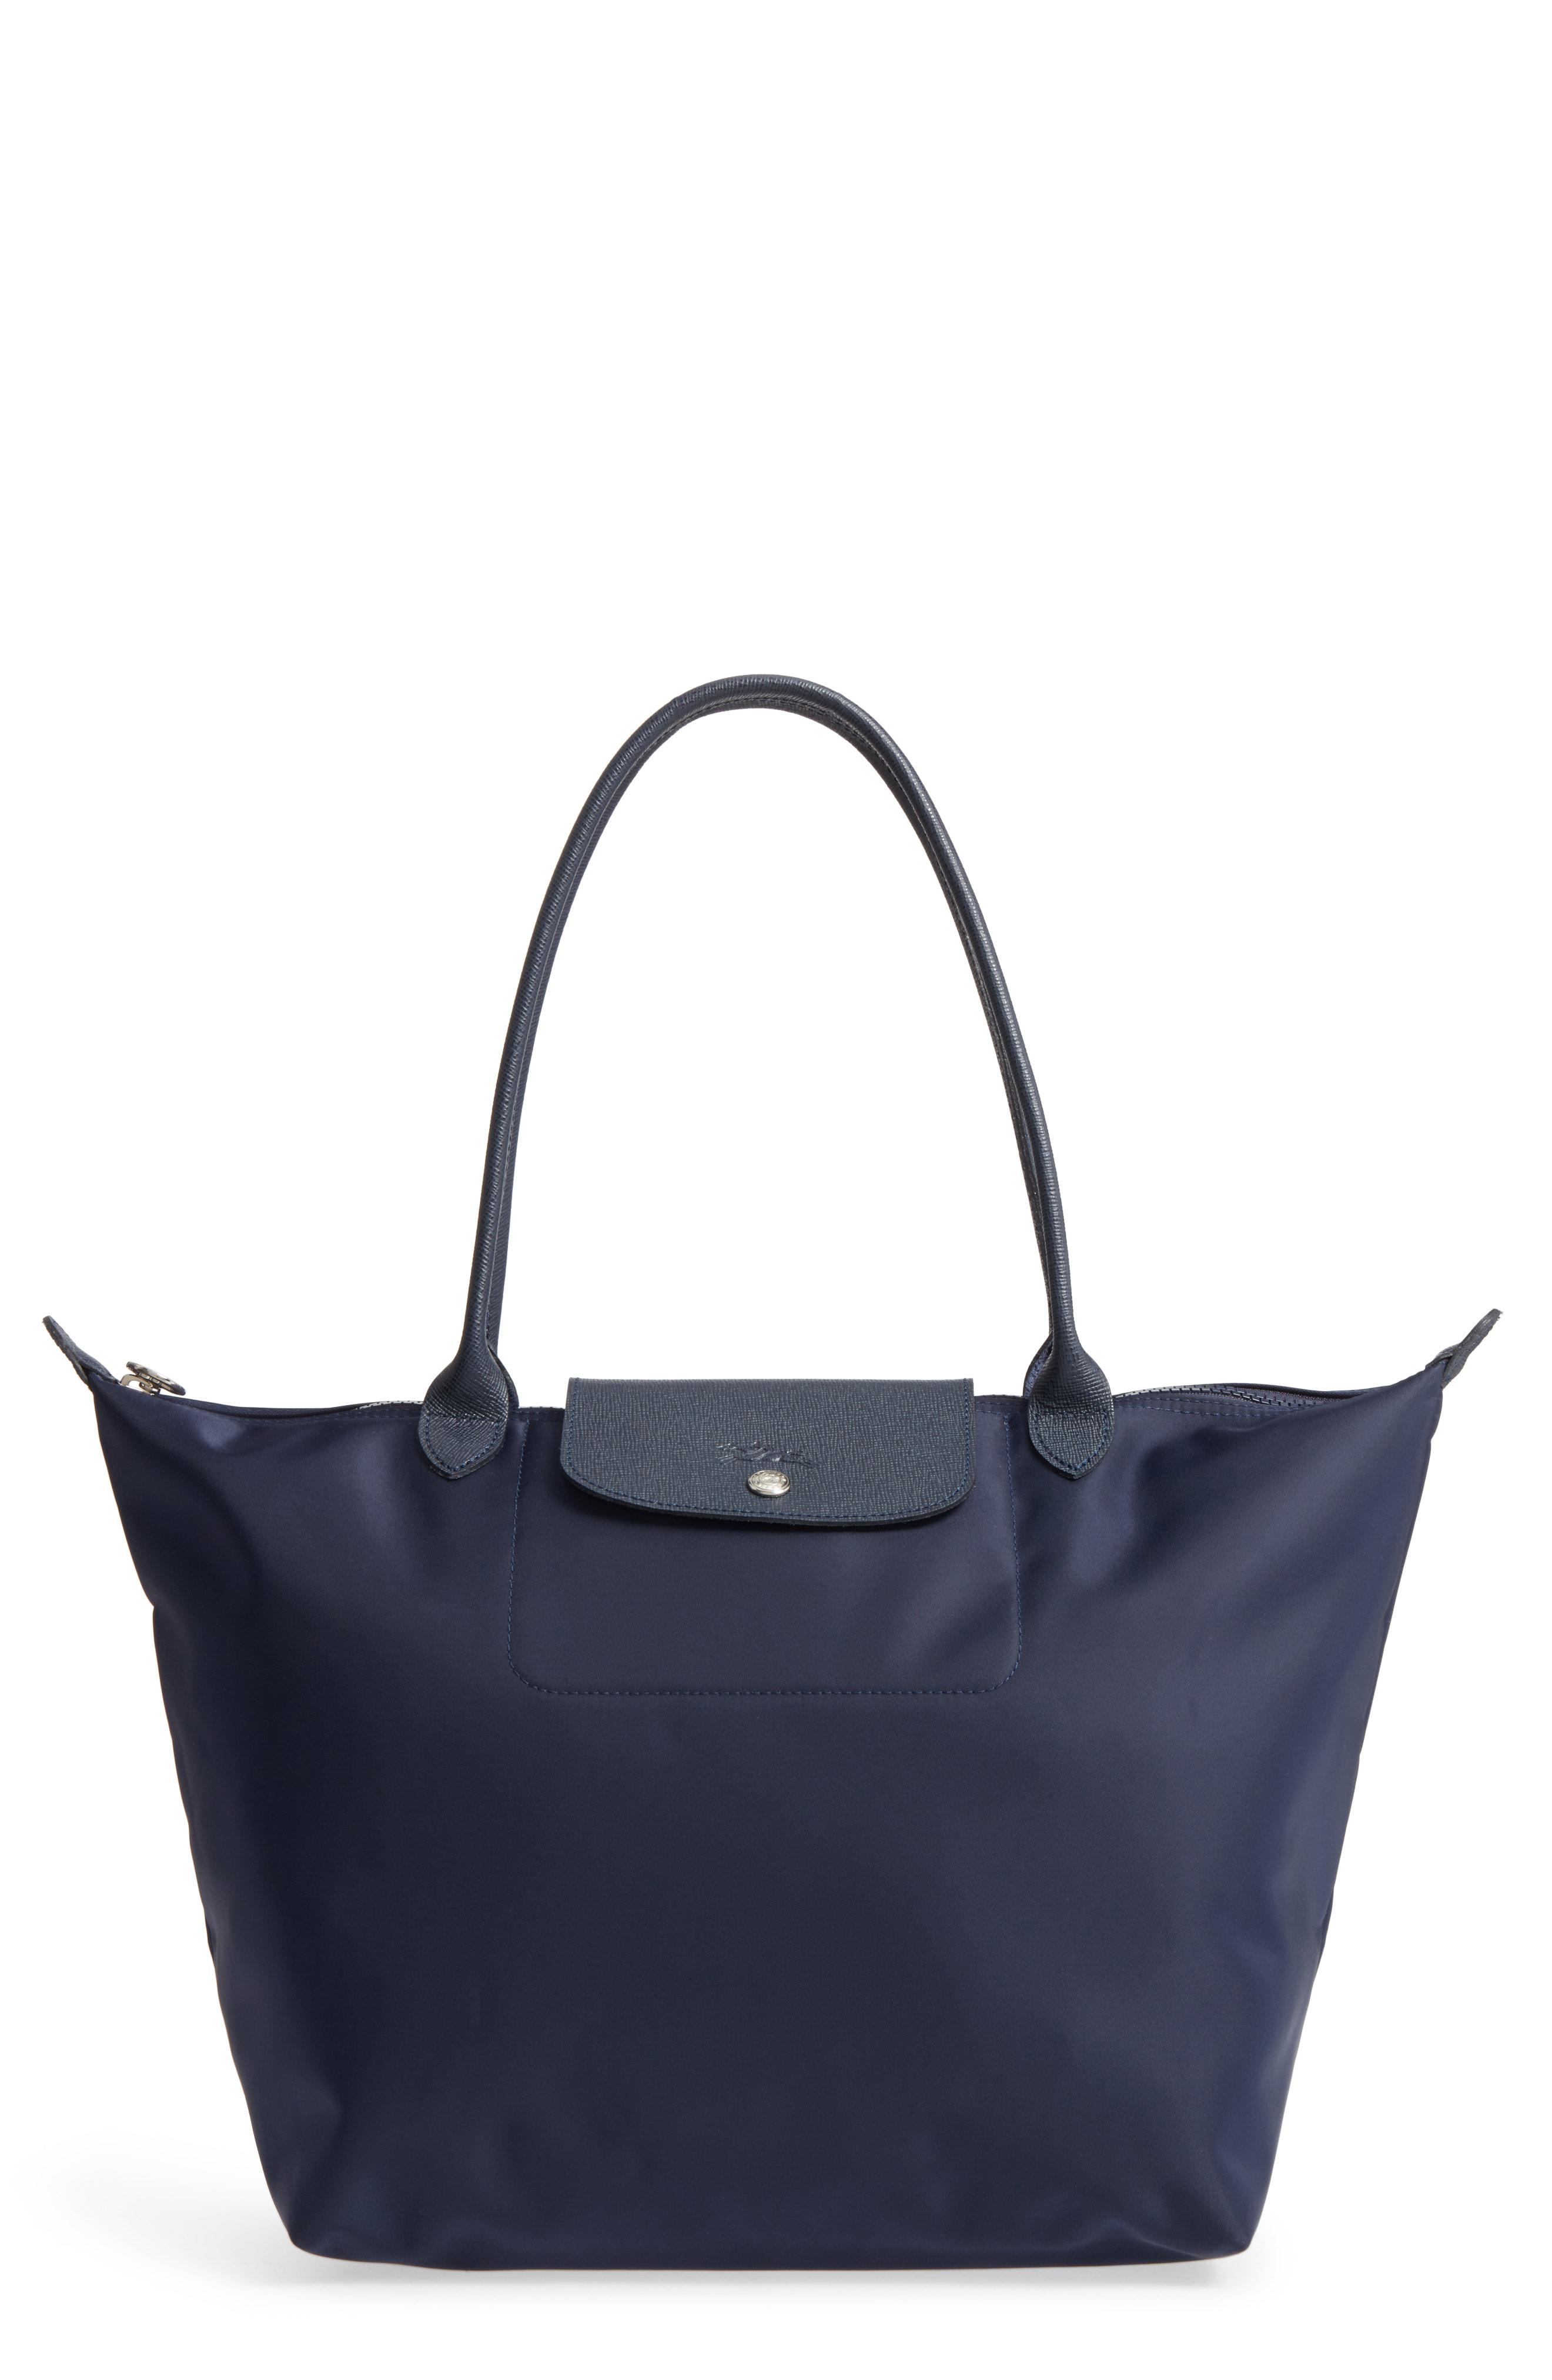 4f9c8a2981 Lyst - Longchamp 'large Le Pliage Neo' Nylon Tote in Blue